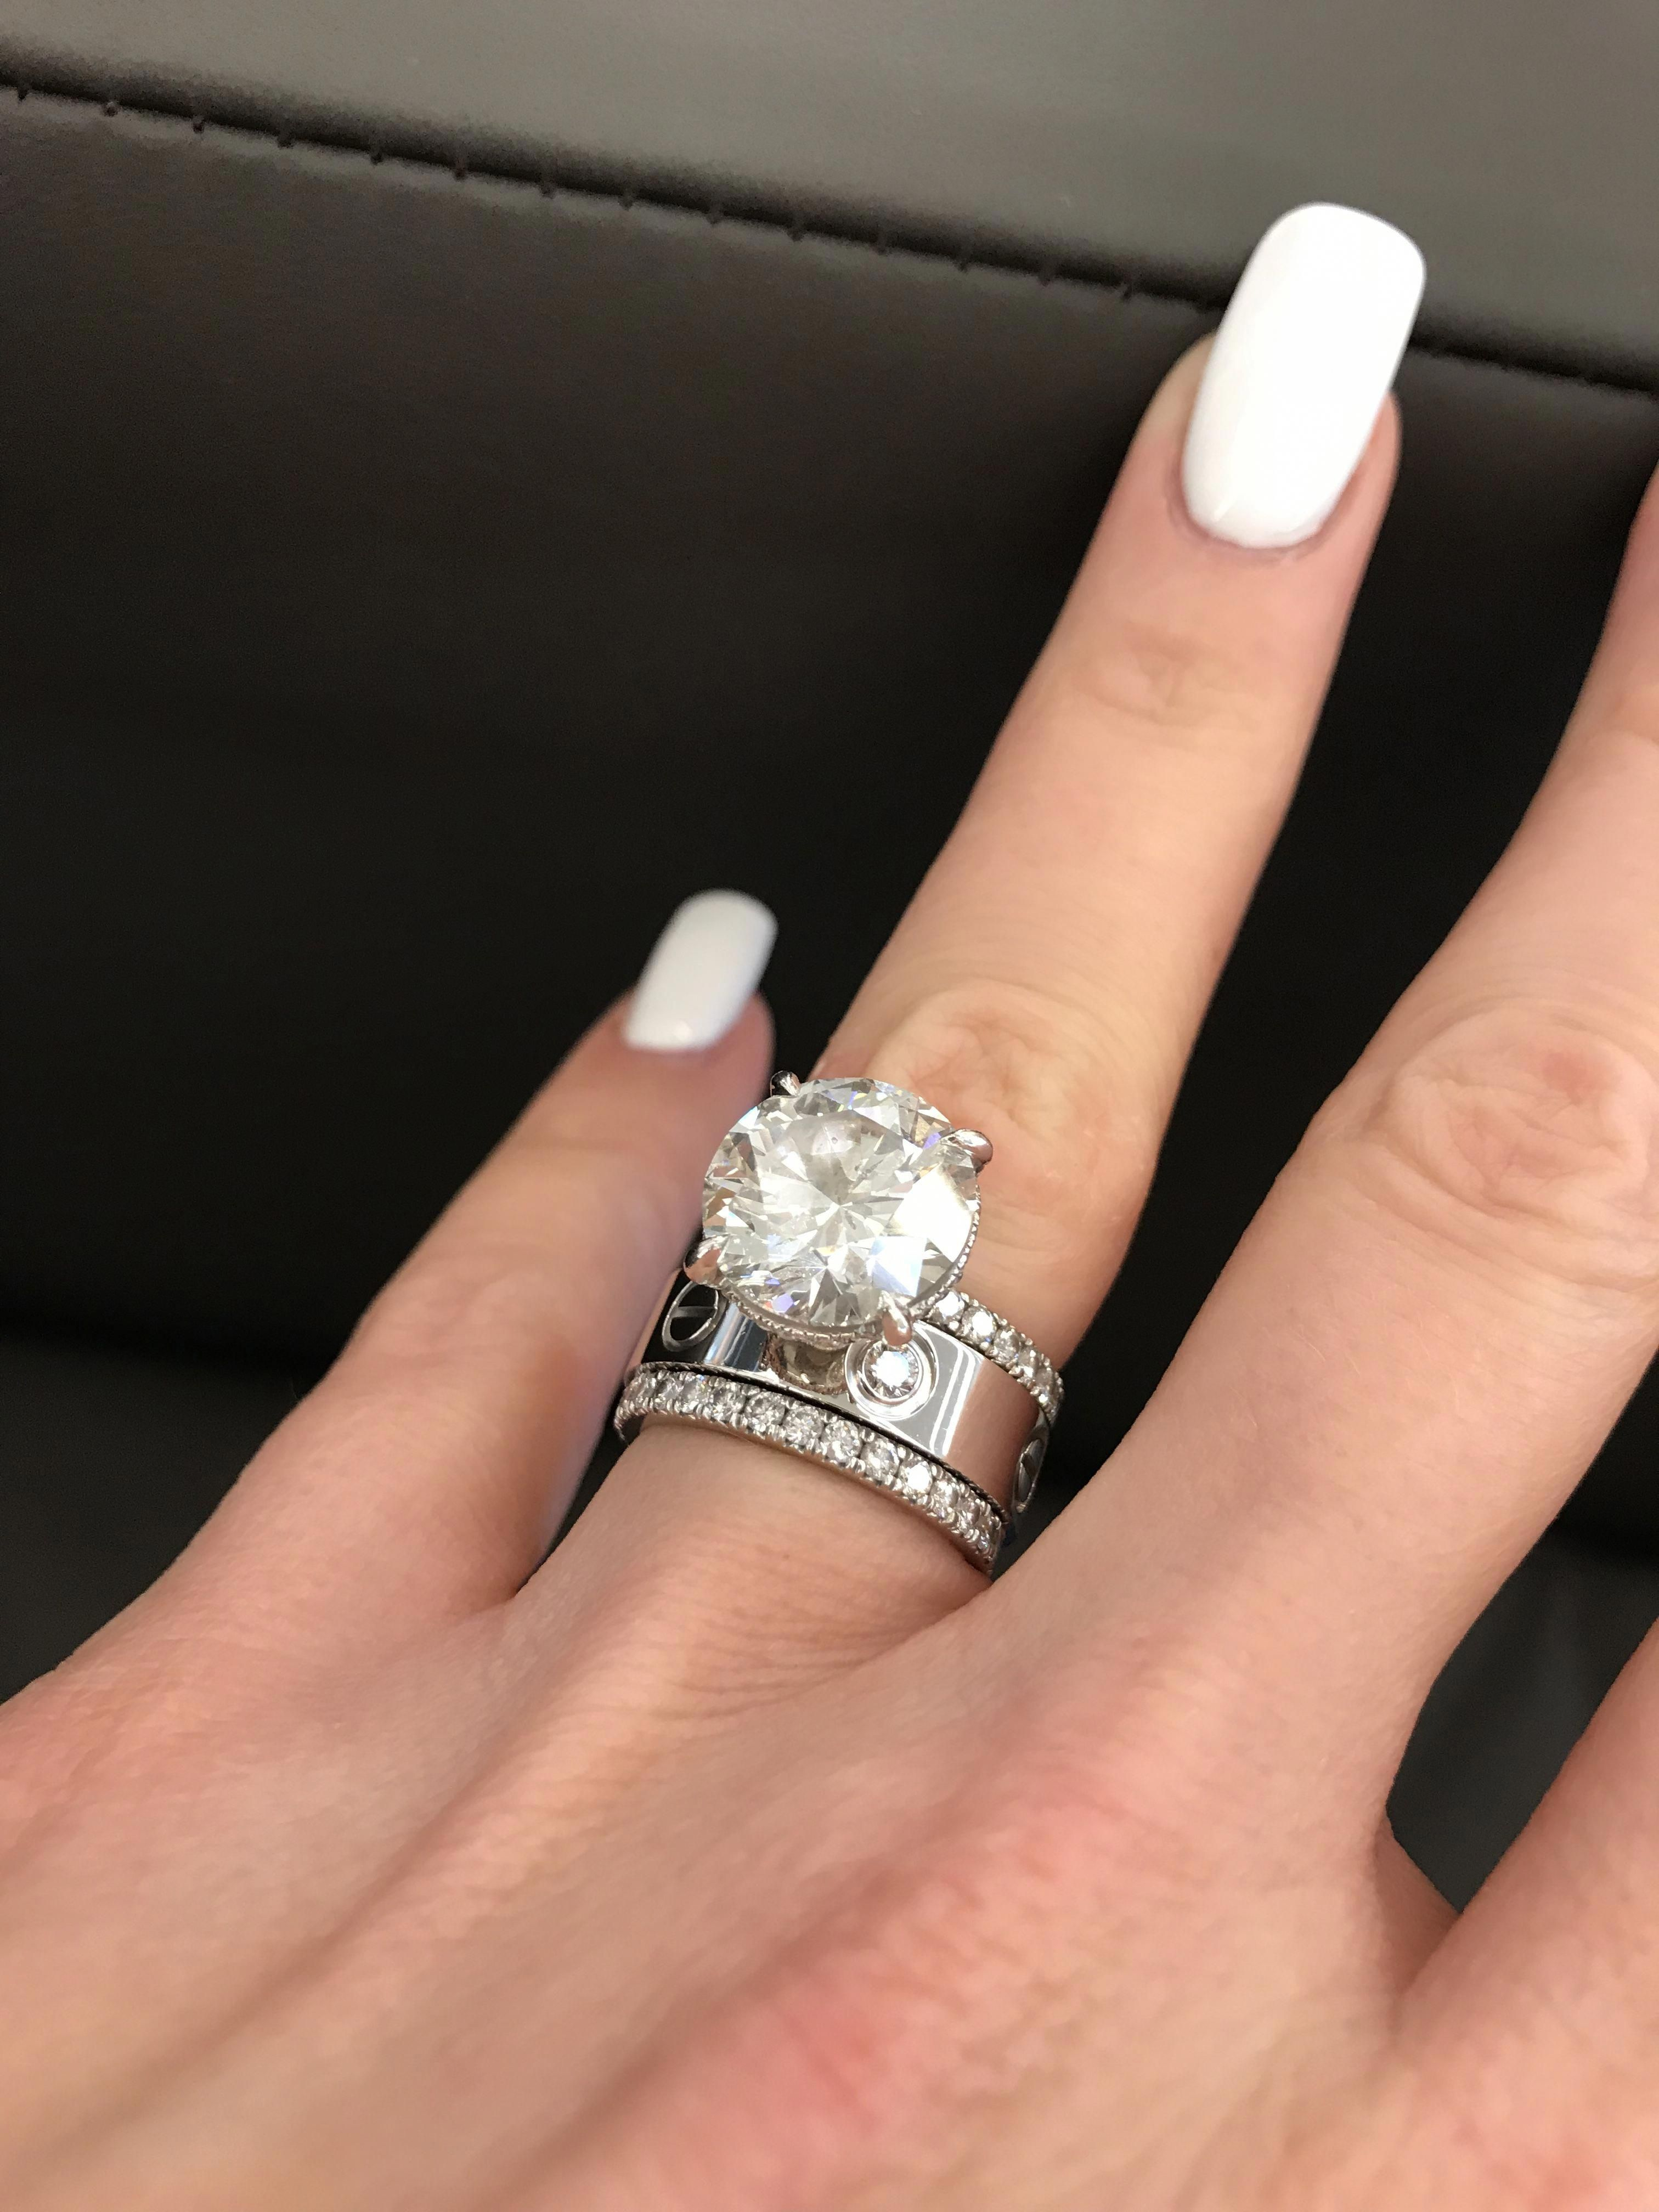 Cartier Love ring white gold with 3 diamonds